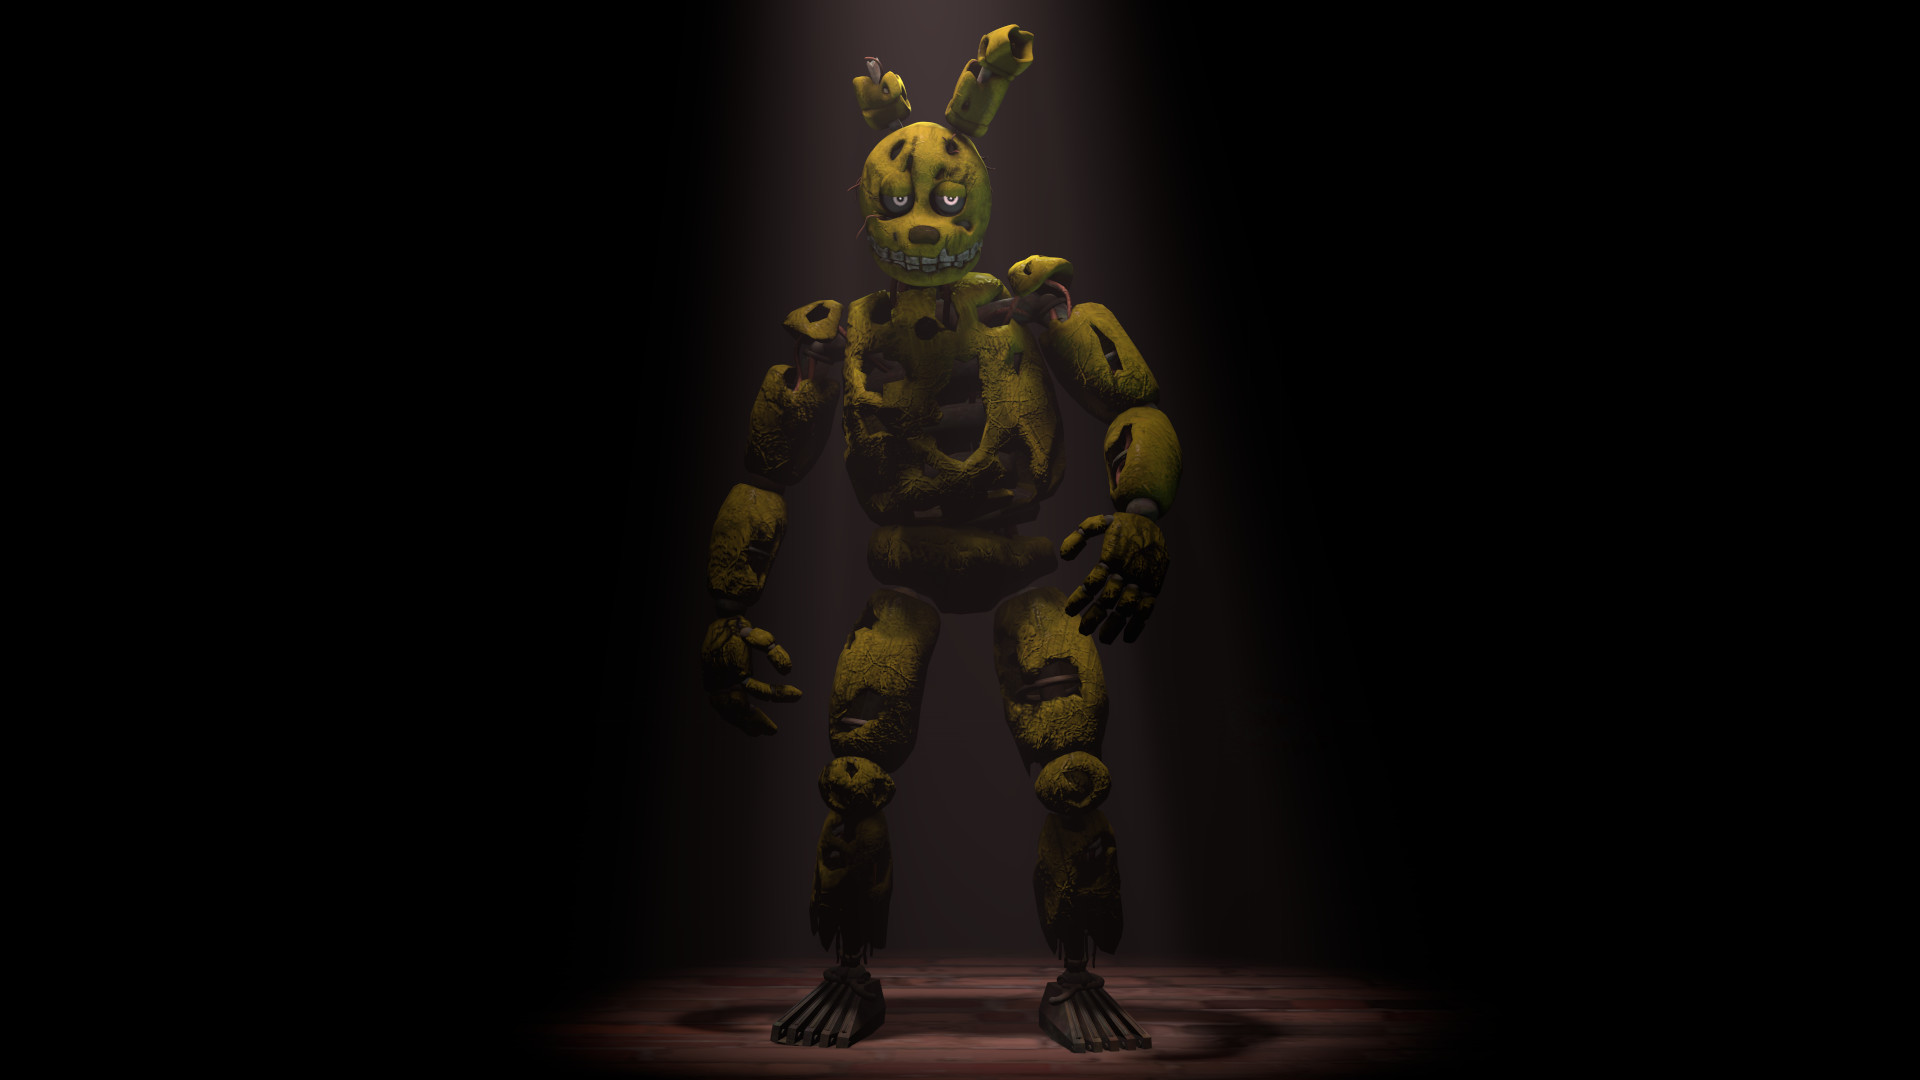 1920x1080 Five Nights at Freddy's 3 Game Character